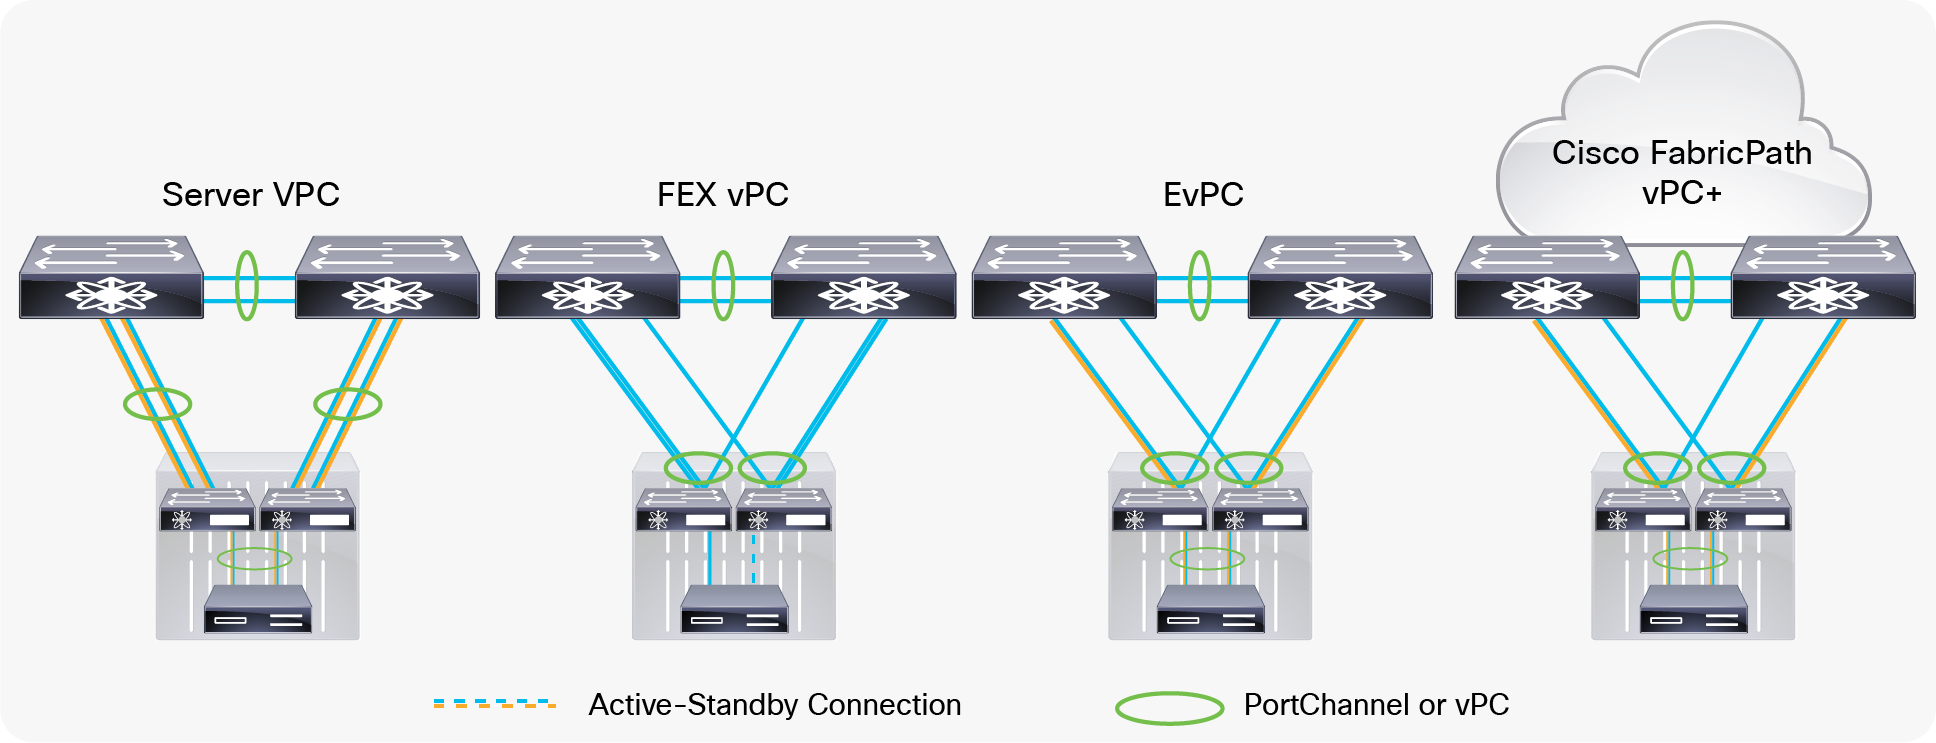 Cisco Nexus B22 Design Scenarios, from Left to Right: Server vPC, Fabric Extender vPC, Enhanced vPC, and vPC+